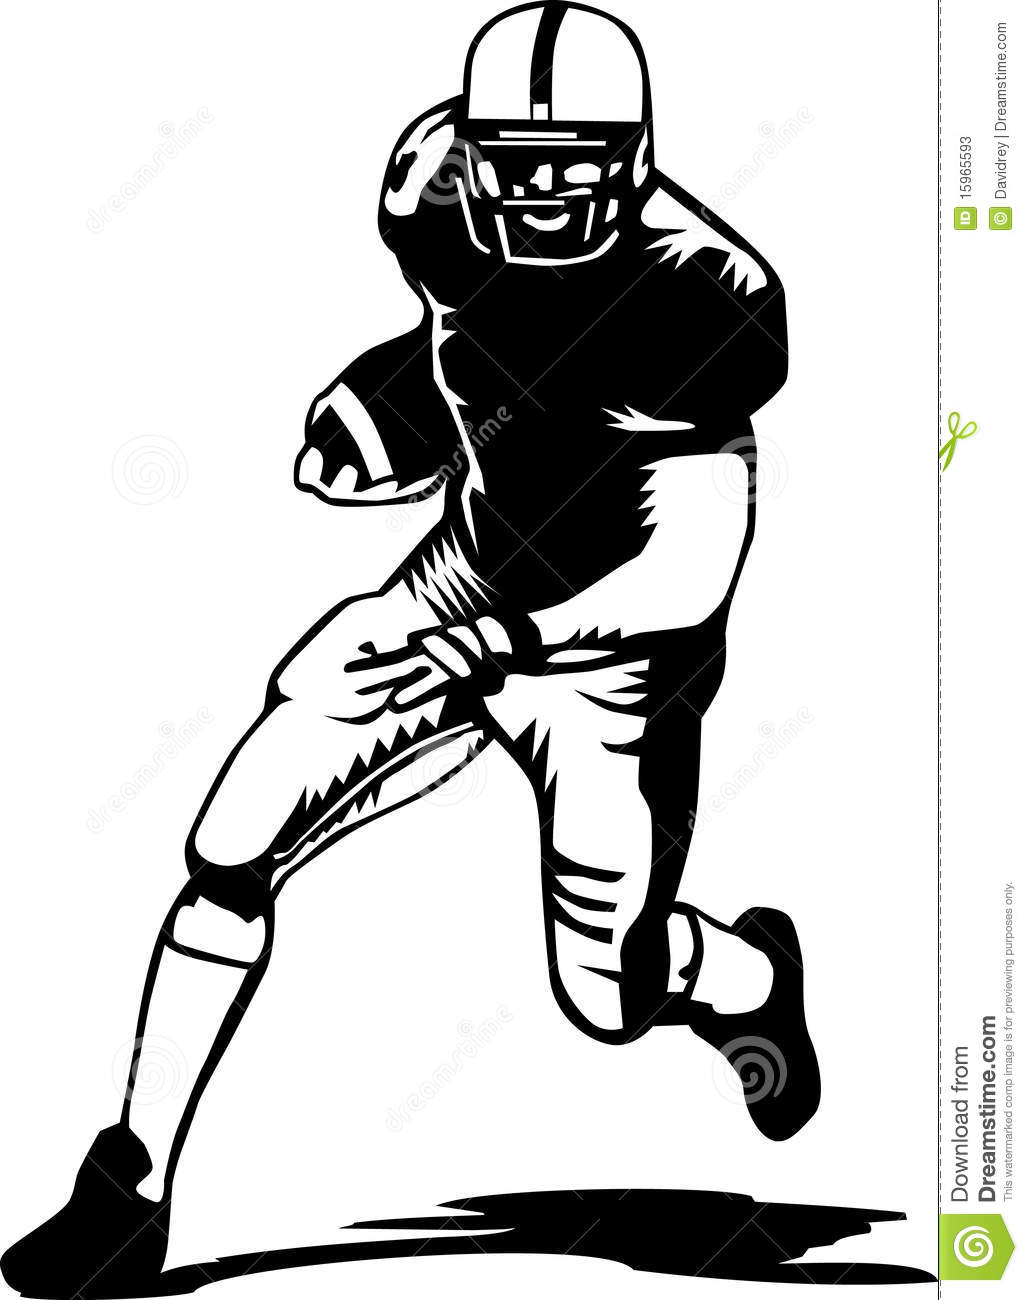 More similar stock images of ` Football player black and white `